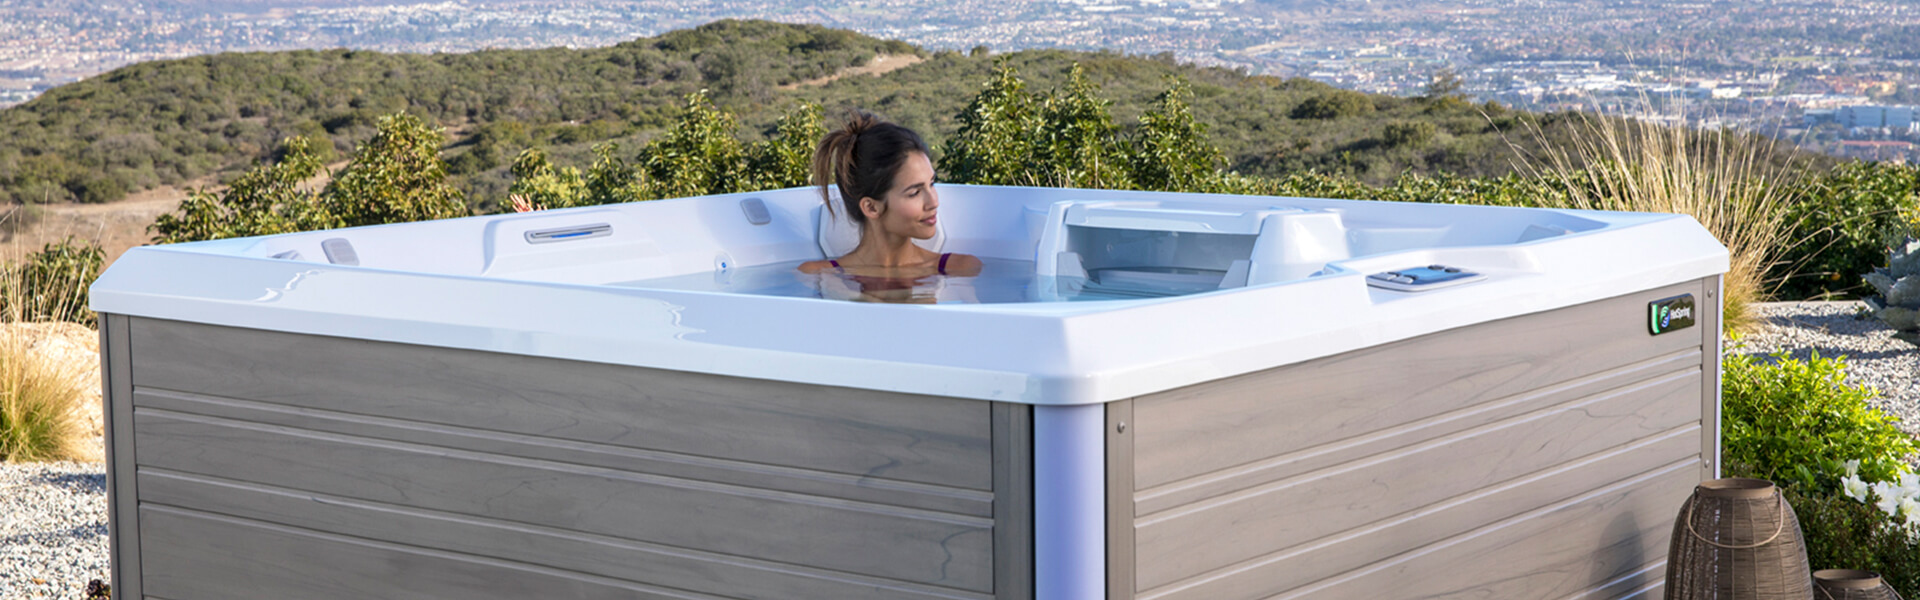 Indulge with a Luxurious Spa at Home, Small Hot Tubs St. Peters